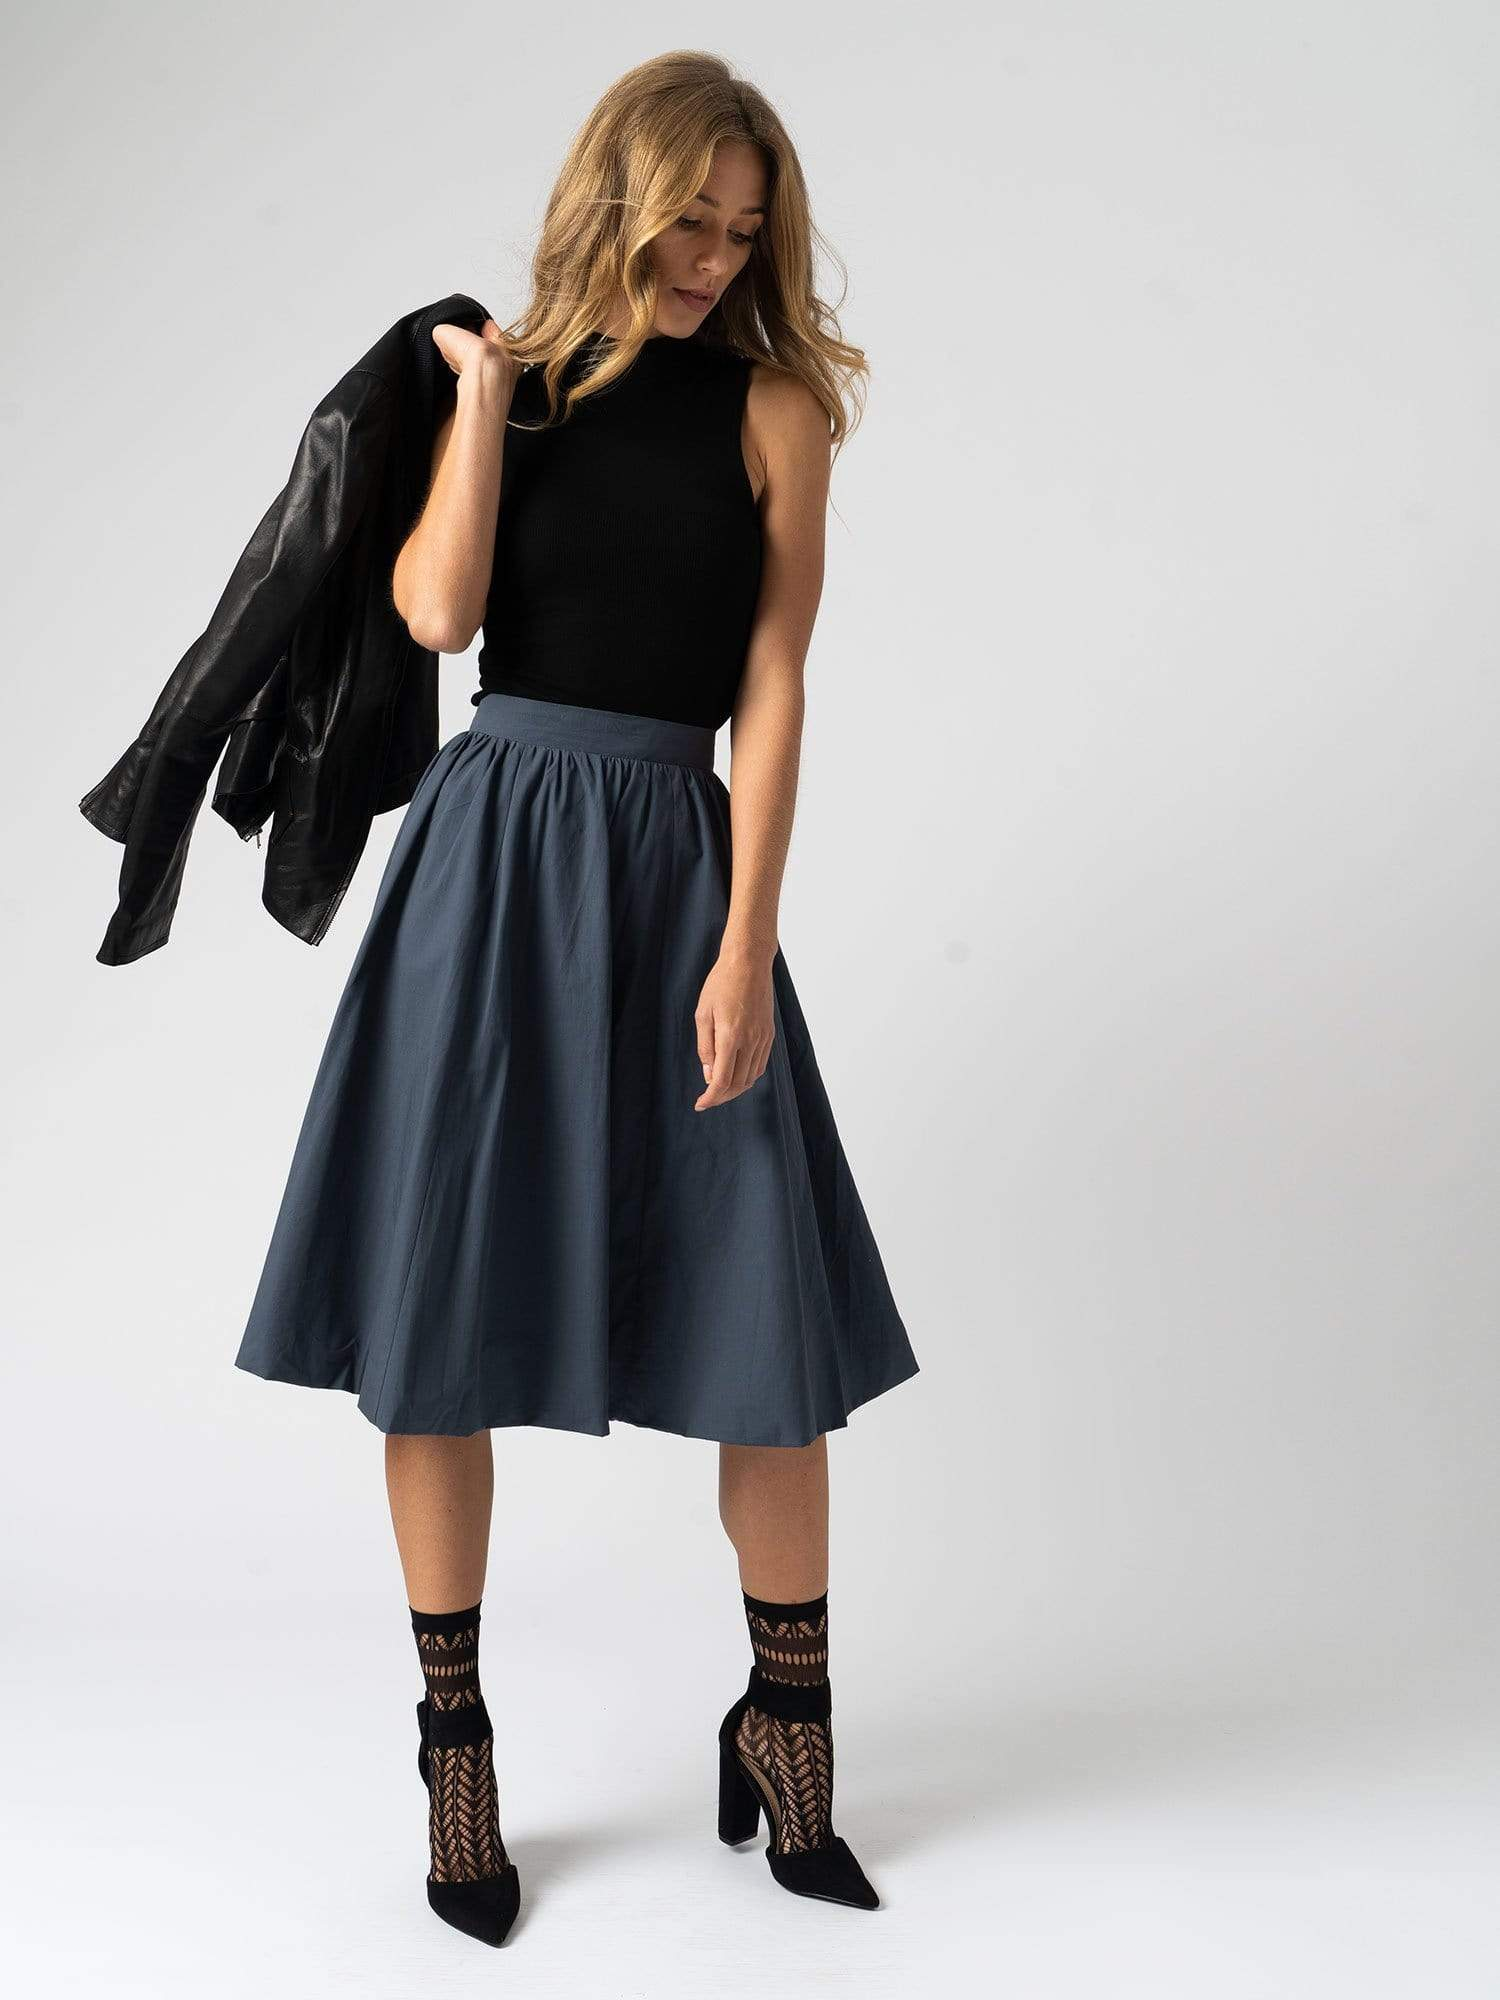 The Biarritz Skirt - Navy